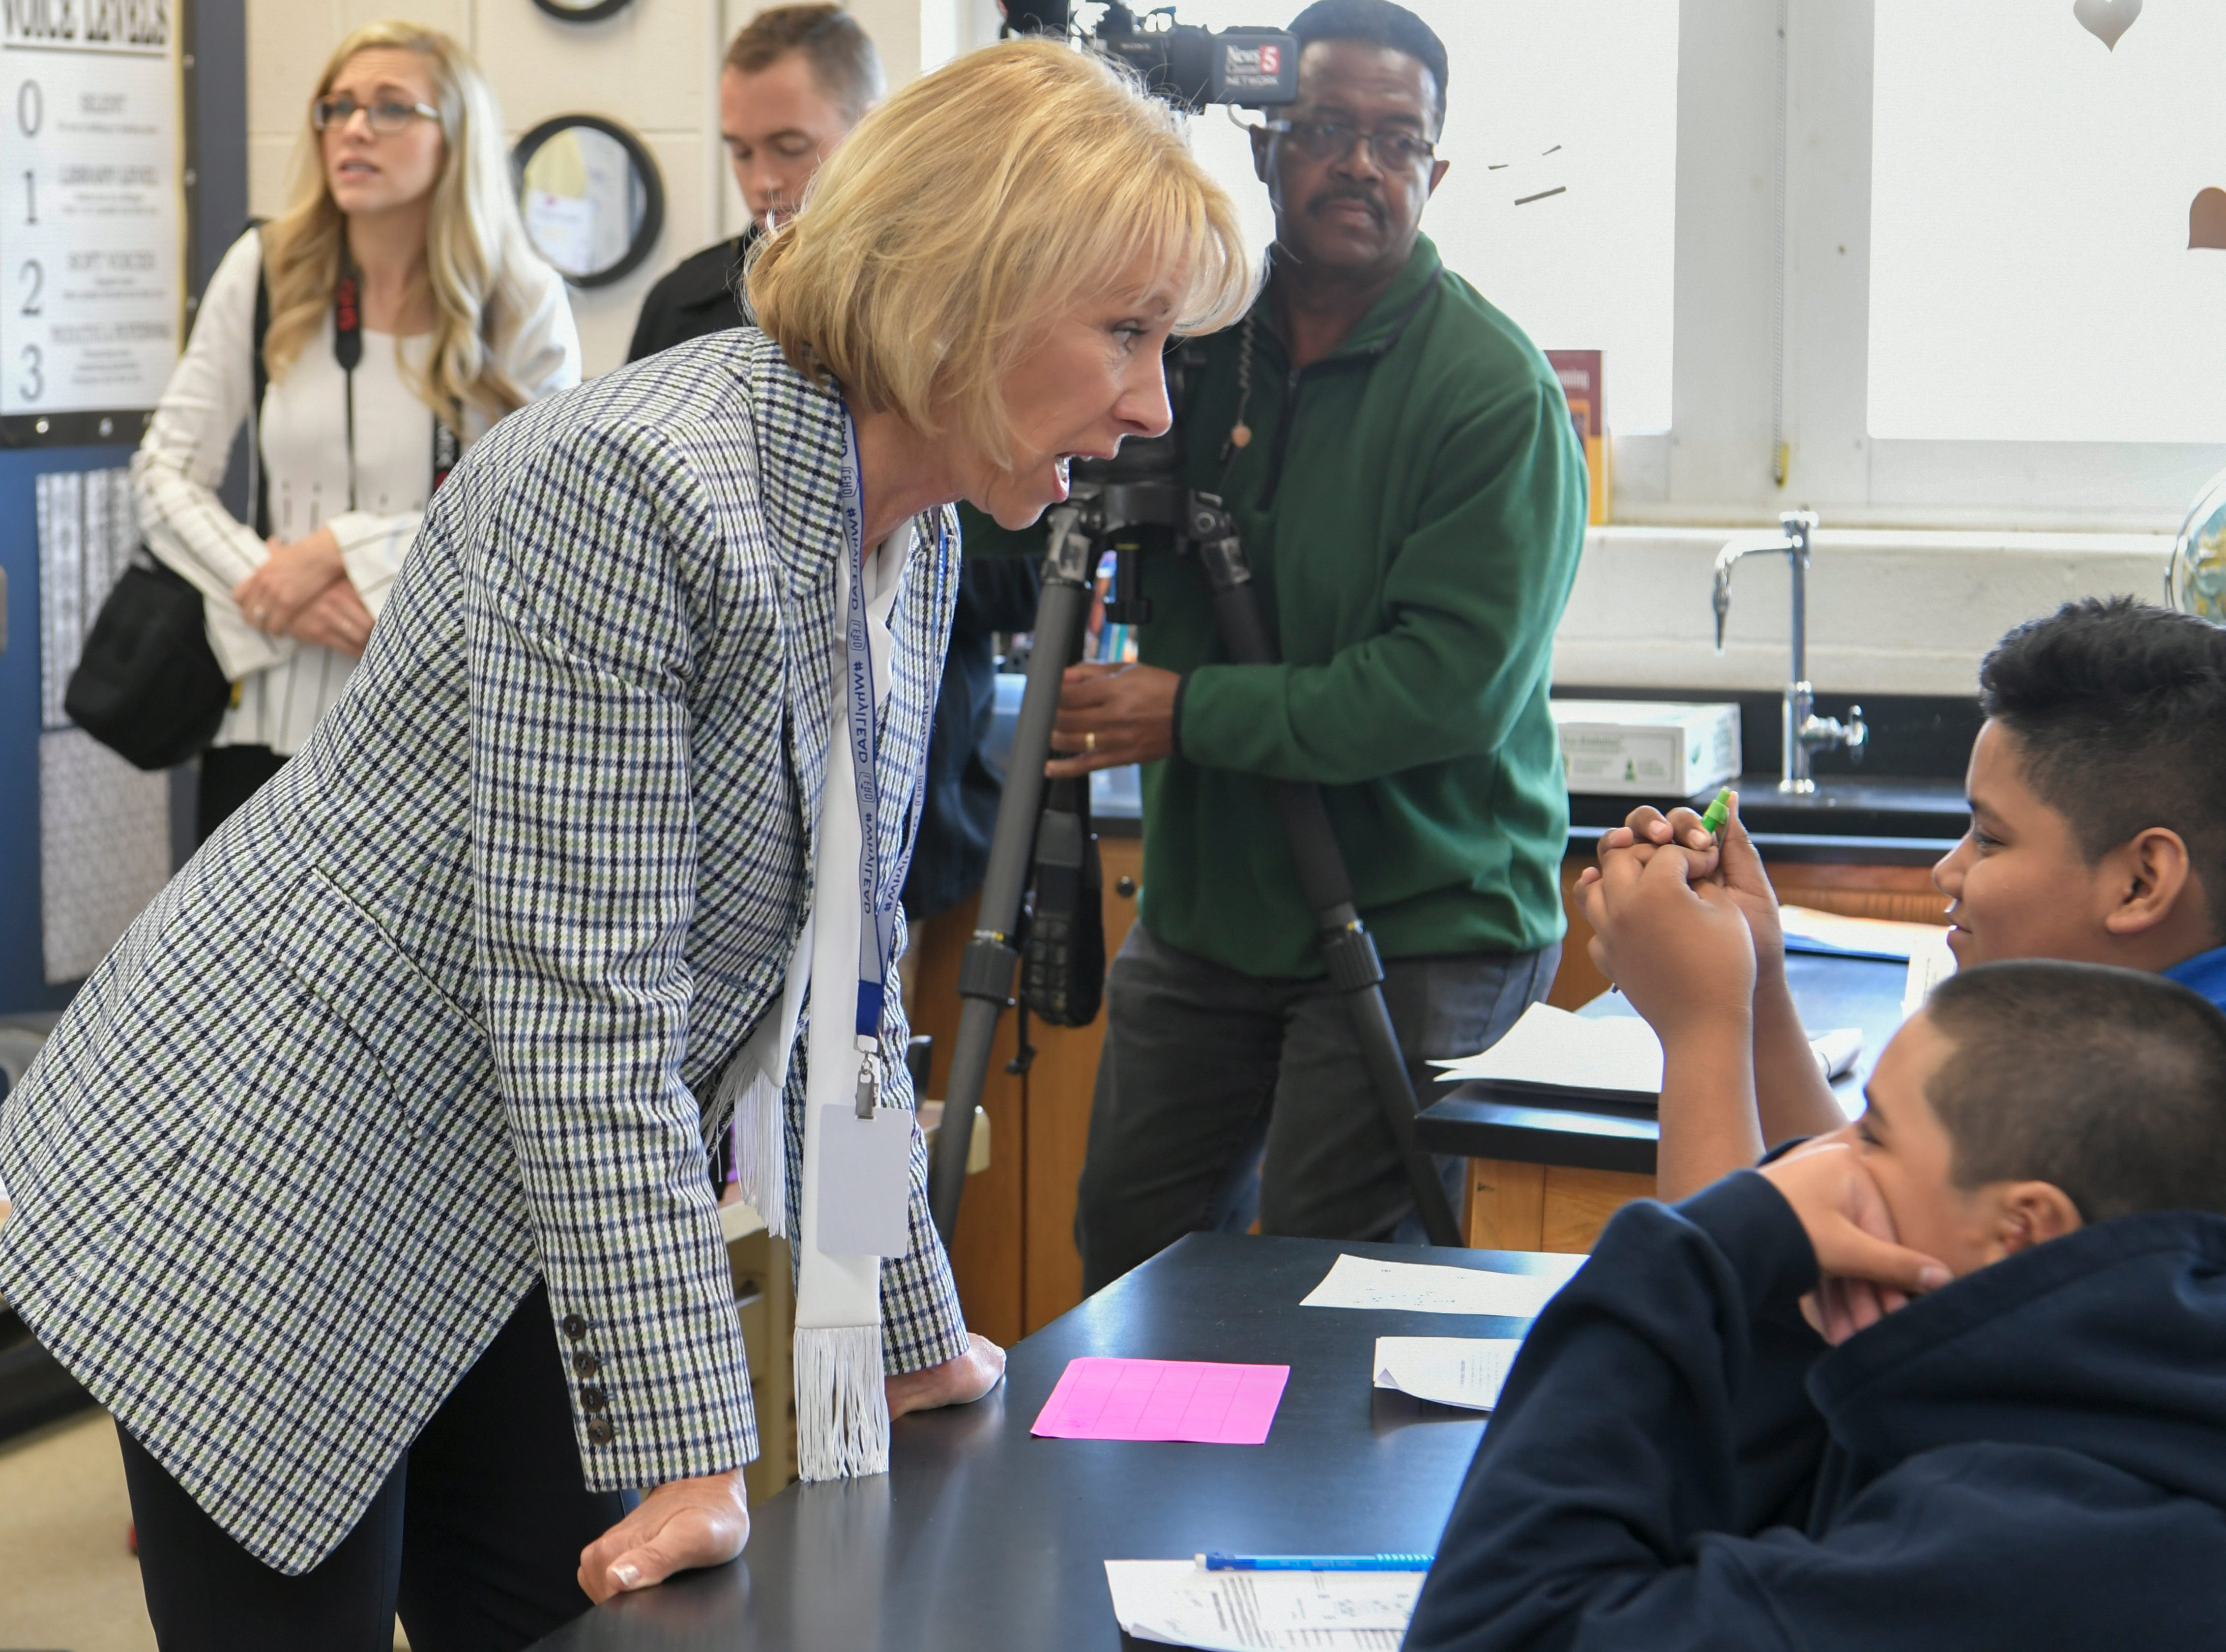 Education Secretary Betsy DeVos and Gov. Bill Lee visit LEAD Cameron, a charter middle school in Nashville, on Monday, April 1, 2019. DeVos and Lee participated in a roundtable discussion about education.